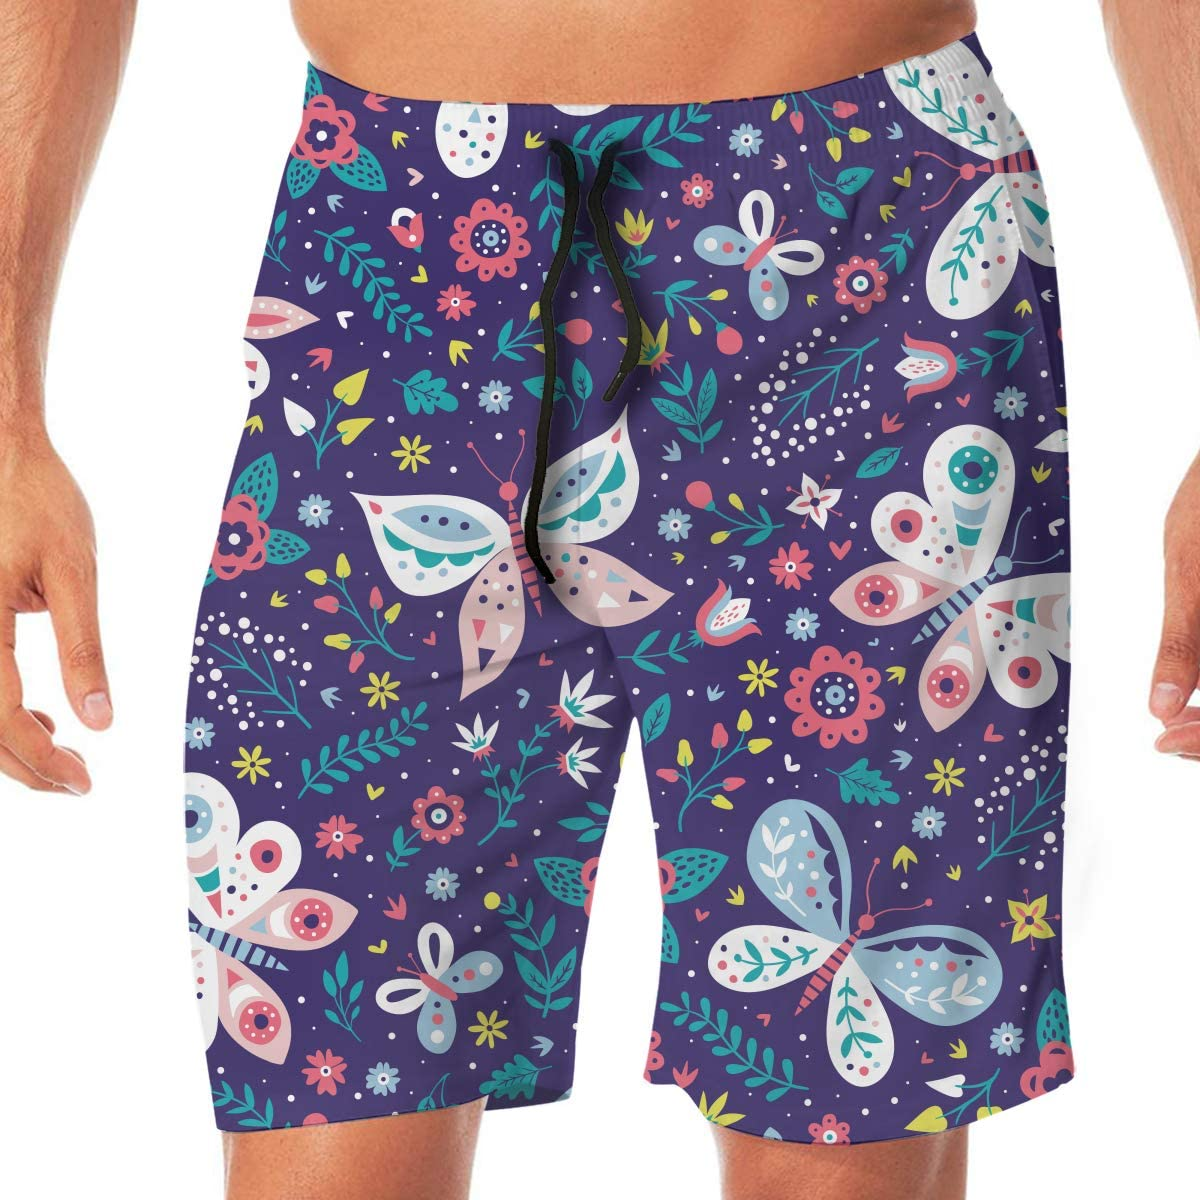 Flying XIE Butterflies and Flowers Mens Trendy Beach Shorts Surf Board Holiday Swim Trunks